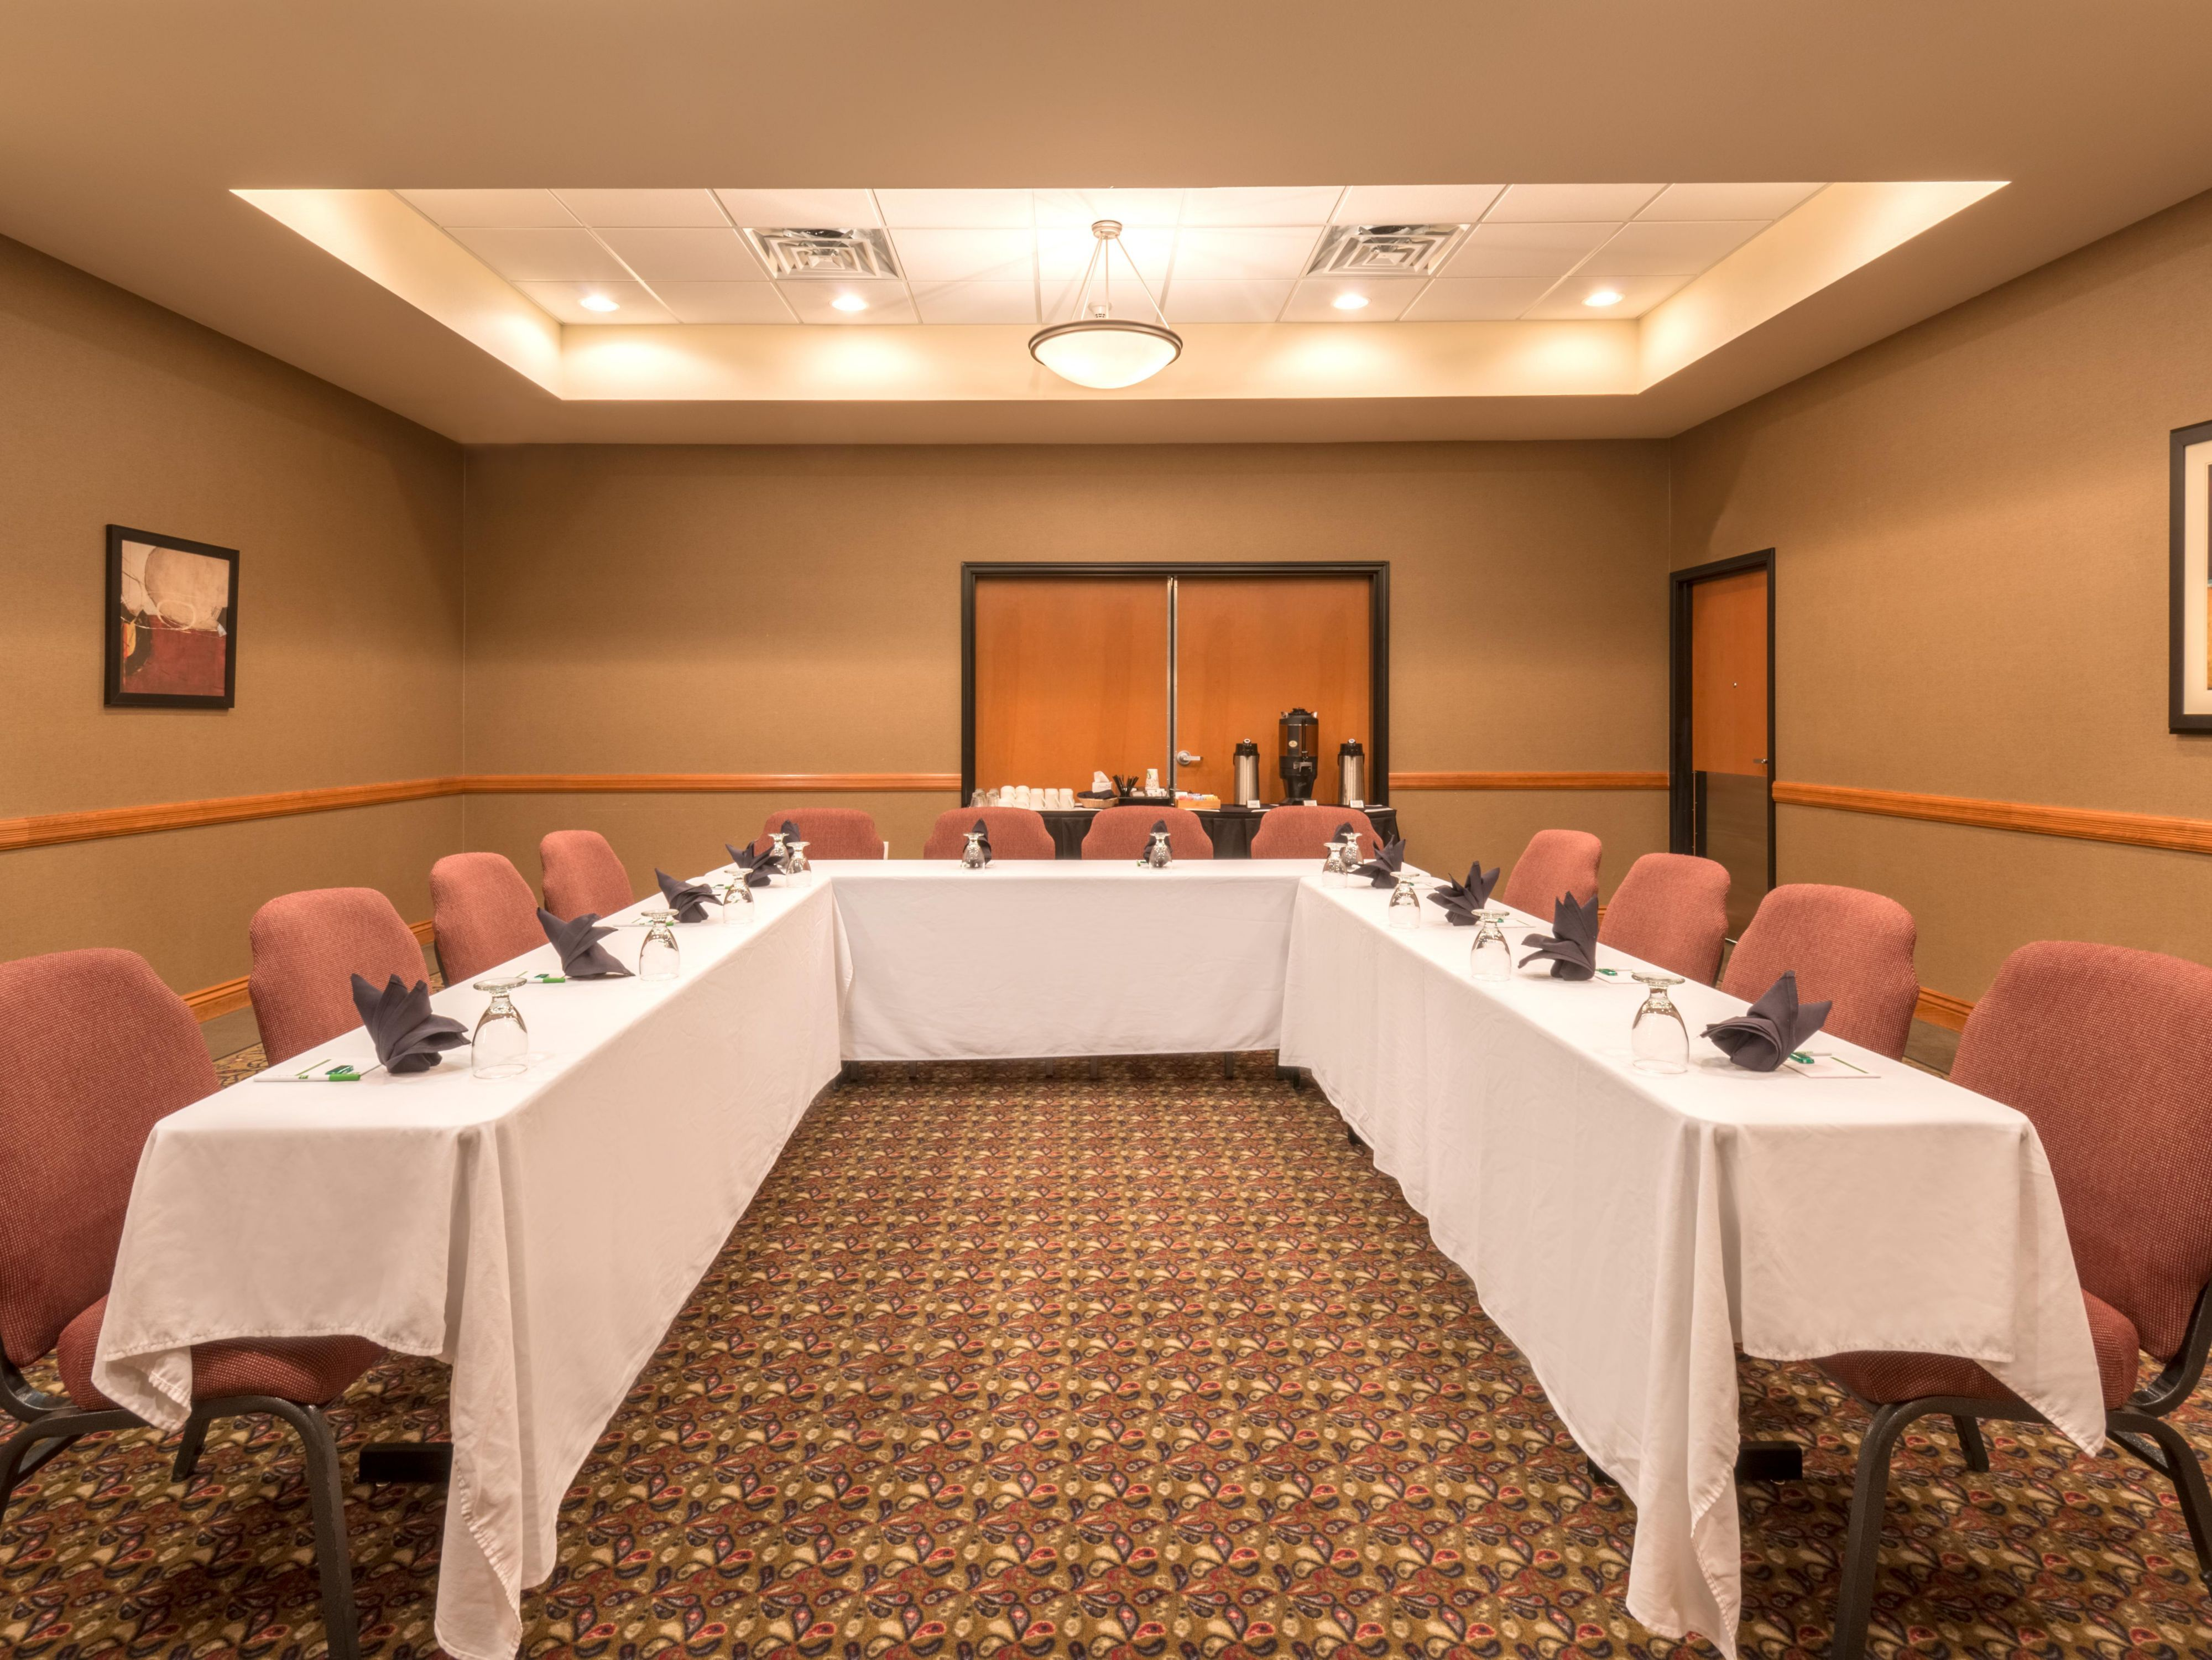 Prairie Room accommodates up to 40 people in a variety of settings